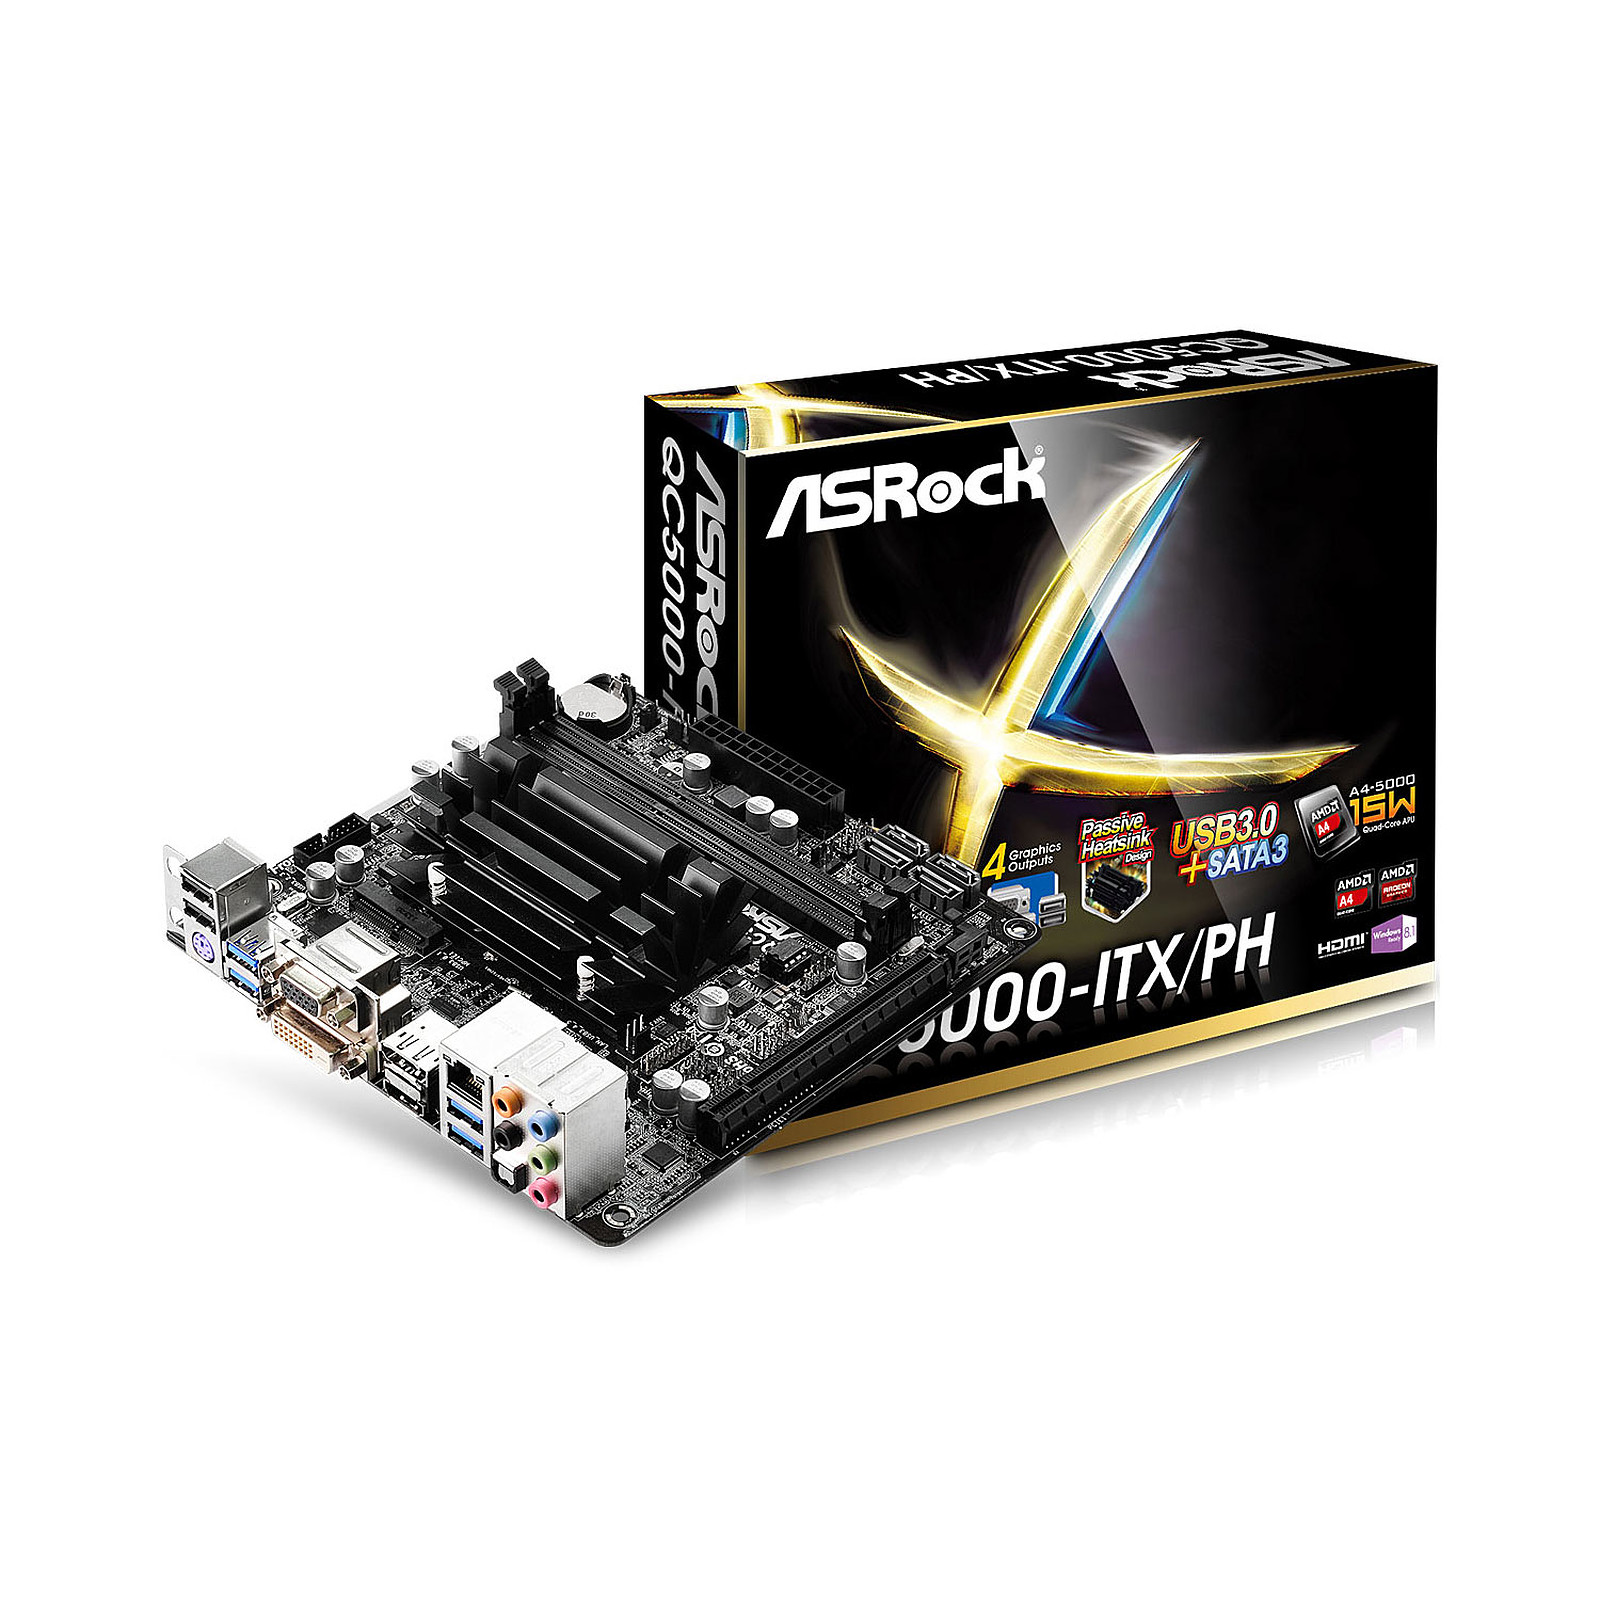 ASRock QC5000-ITX/PH